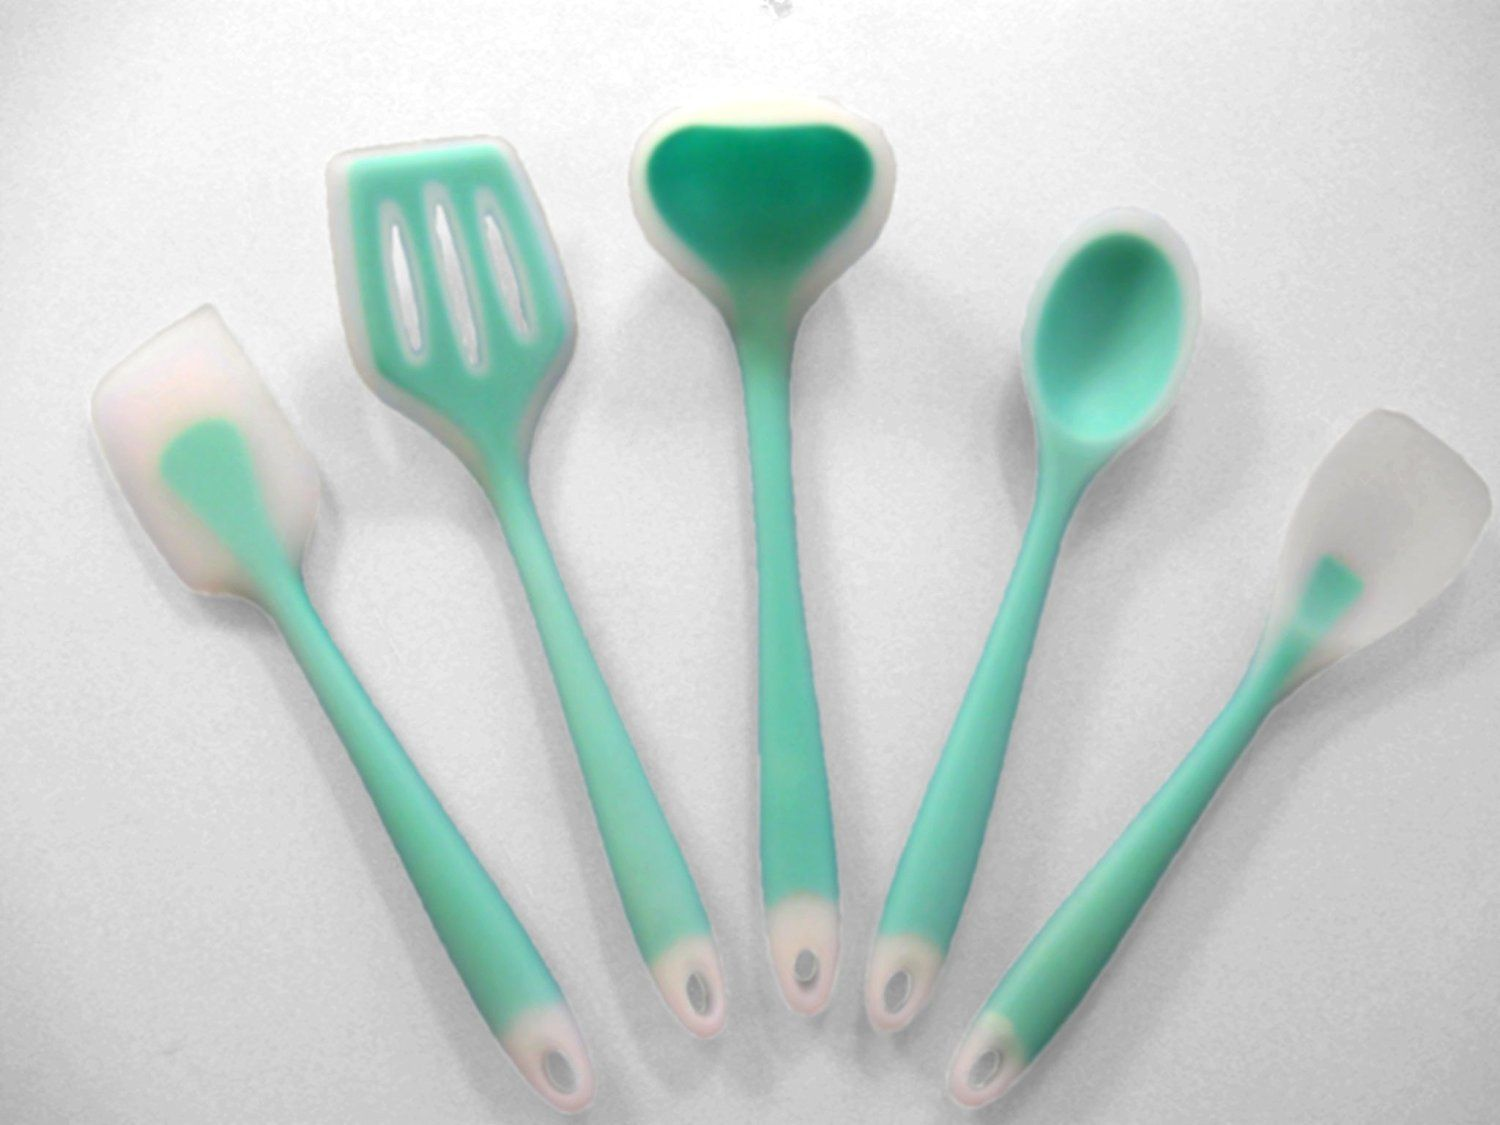 Amazon.com: HIGH QUALITY 5-piece Silicone Cooking Utensils Set with ...